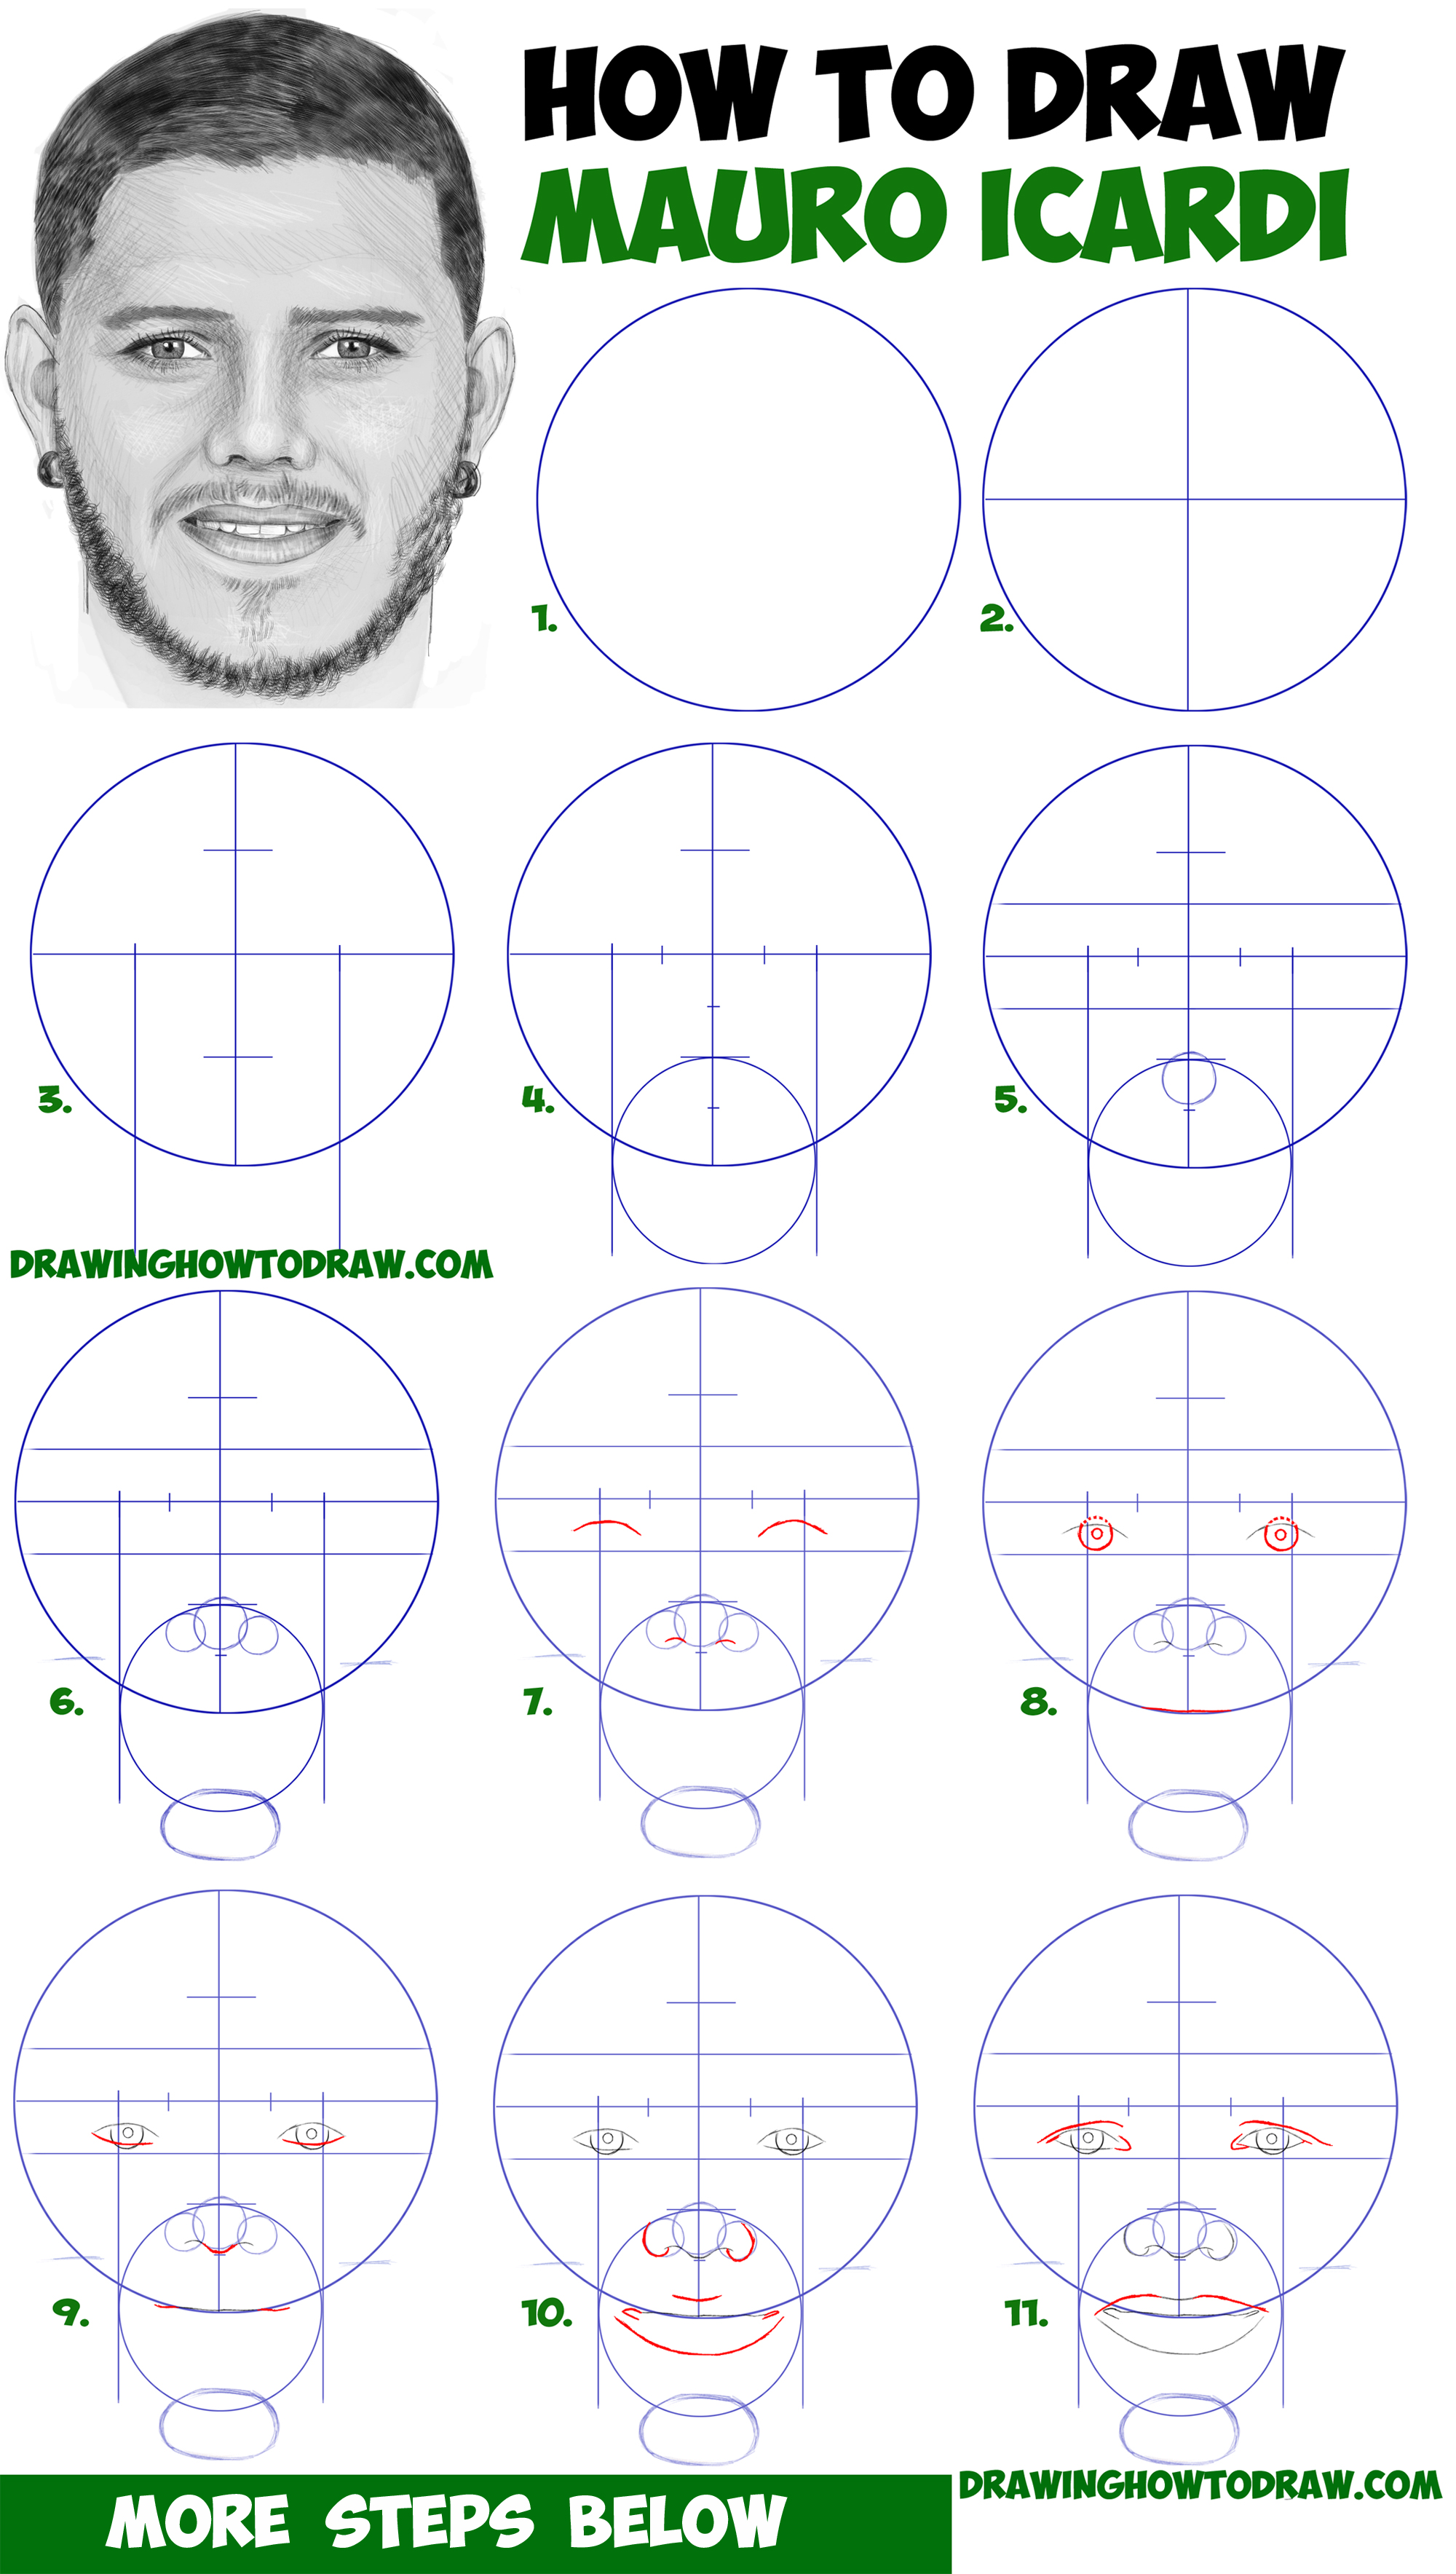 How to Draw Mauro Icardi - Drawing a Realistic Man's Face with Beard from Front View Step by Step Drawing for Beginners